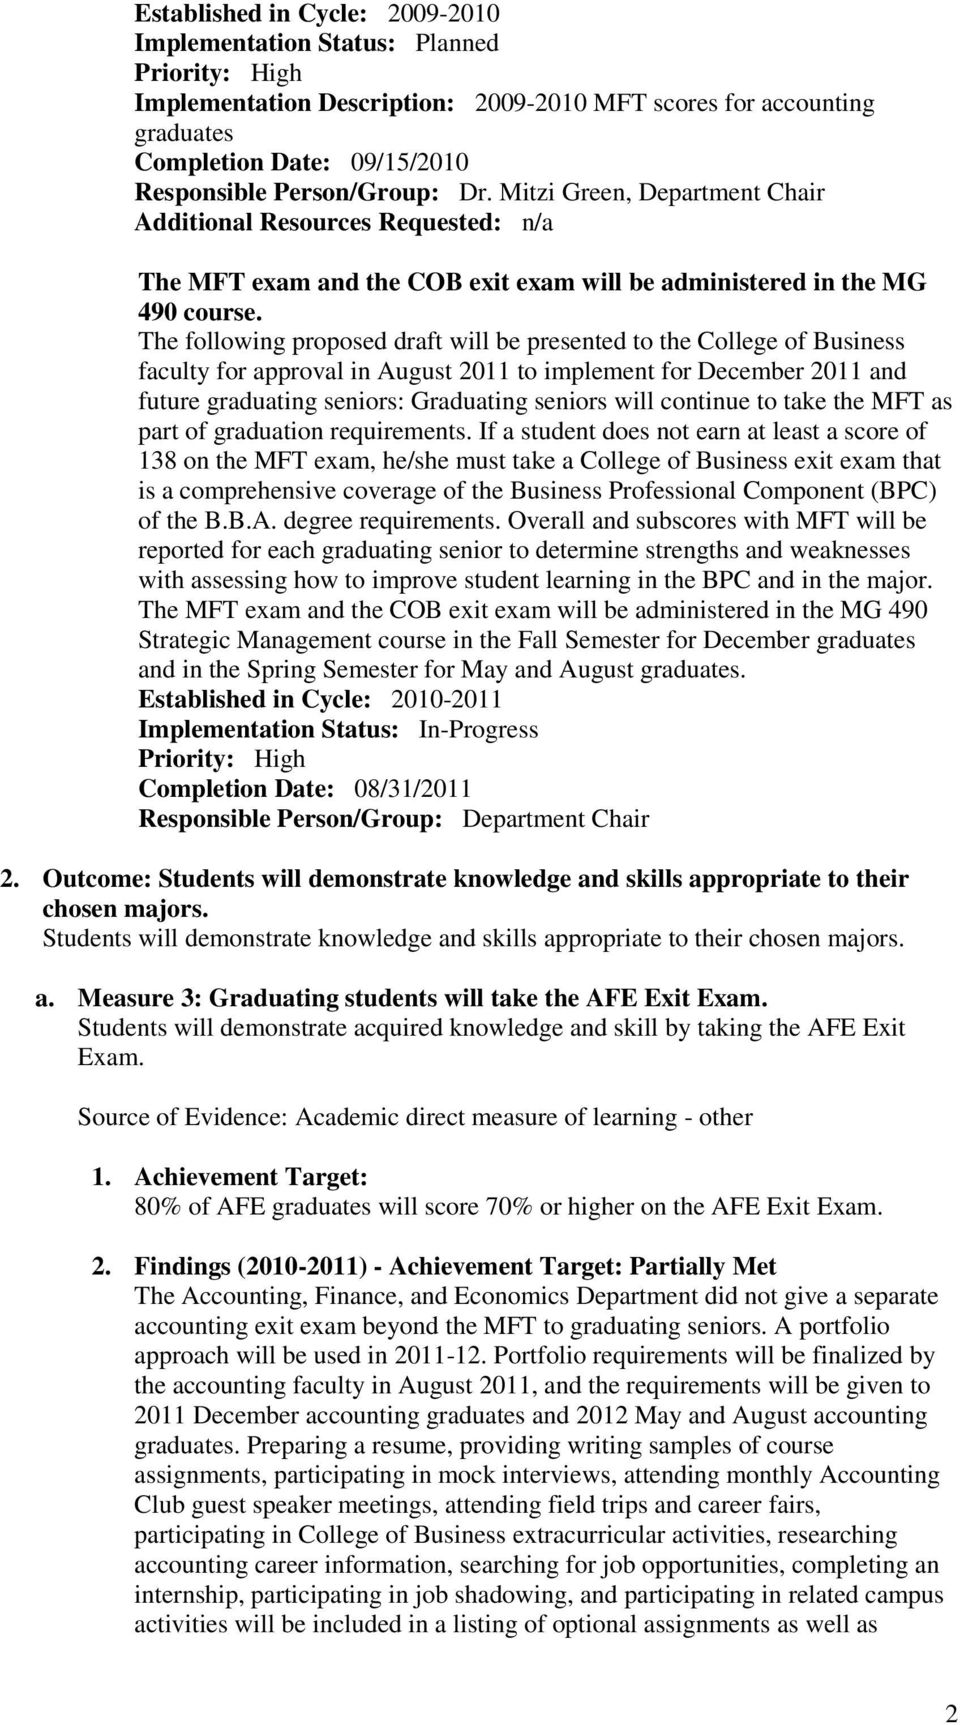 The following proposed draft will be presented to the College of Business faculty for approval in August 2011 to implement for December 2011 and future graduating seniors: Graduating seniors will